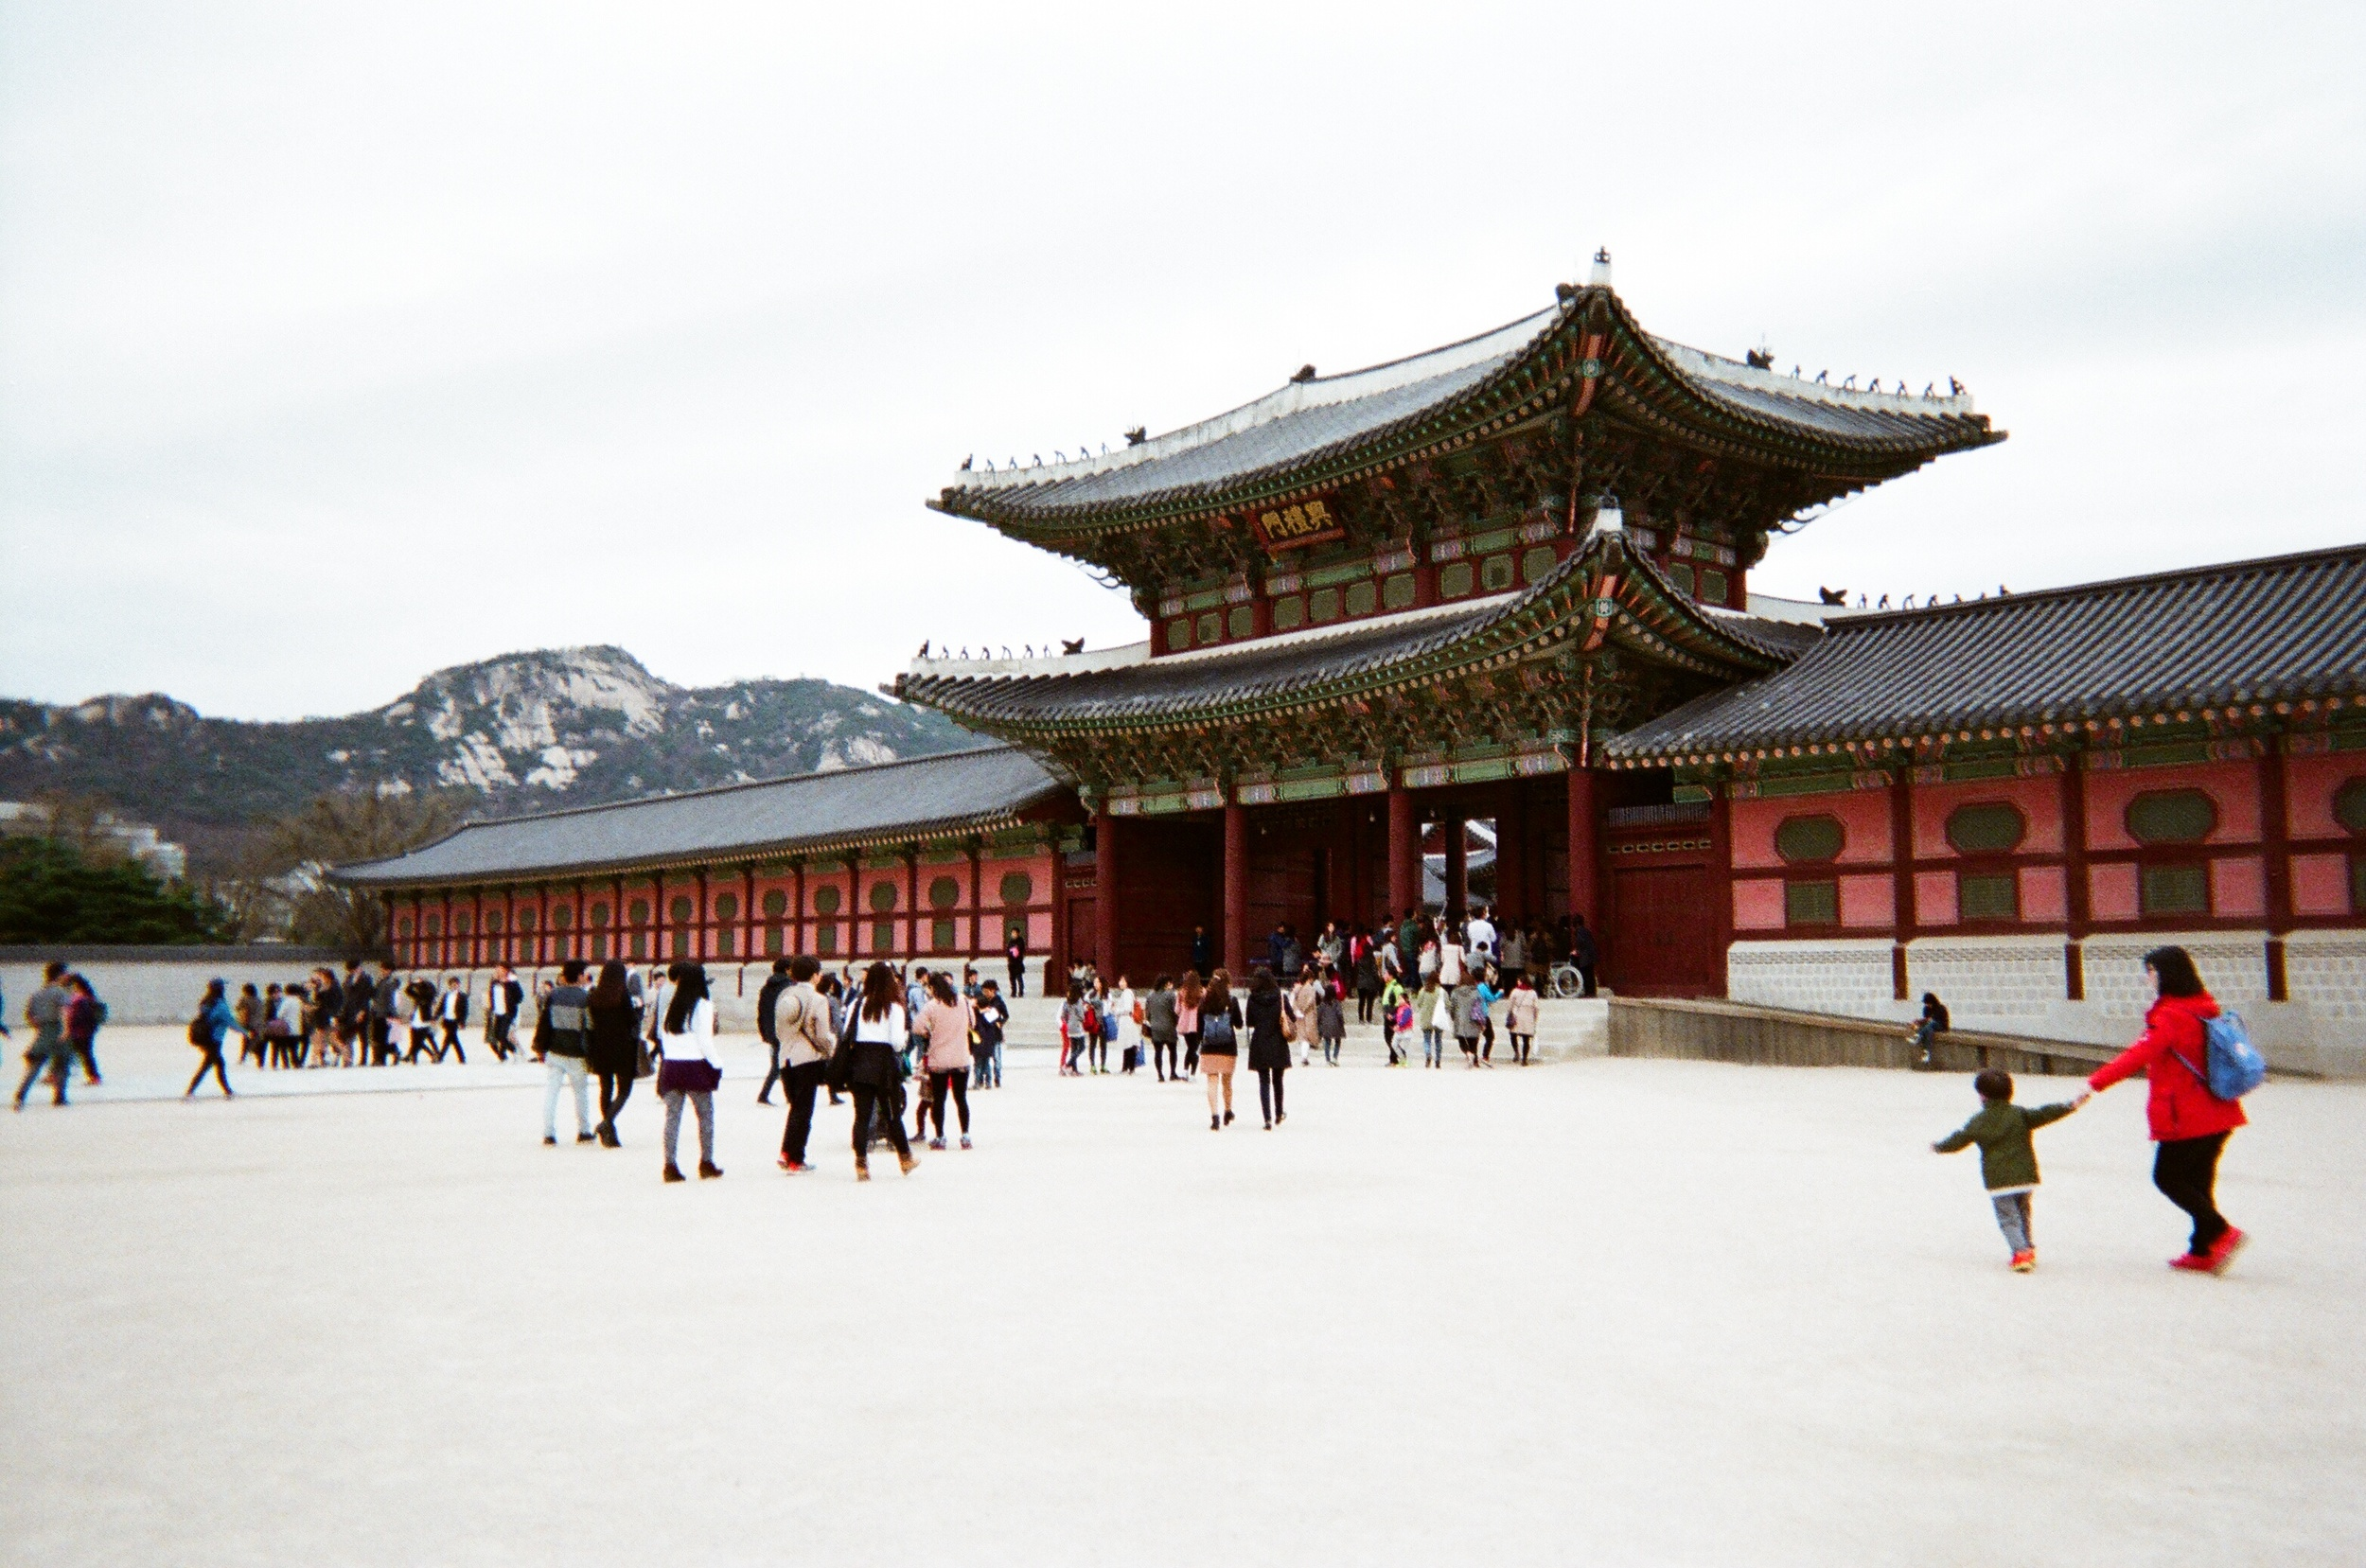 gyeongbokgung palace first gate